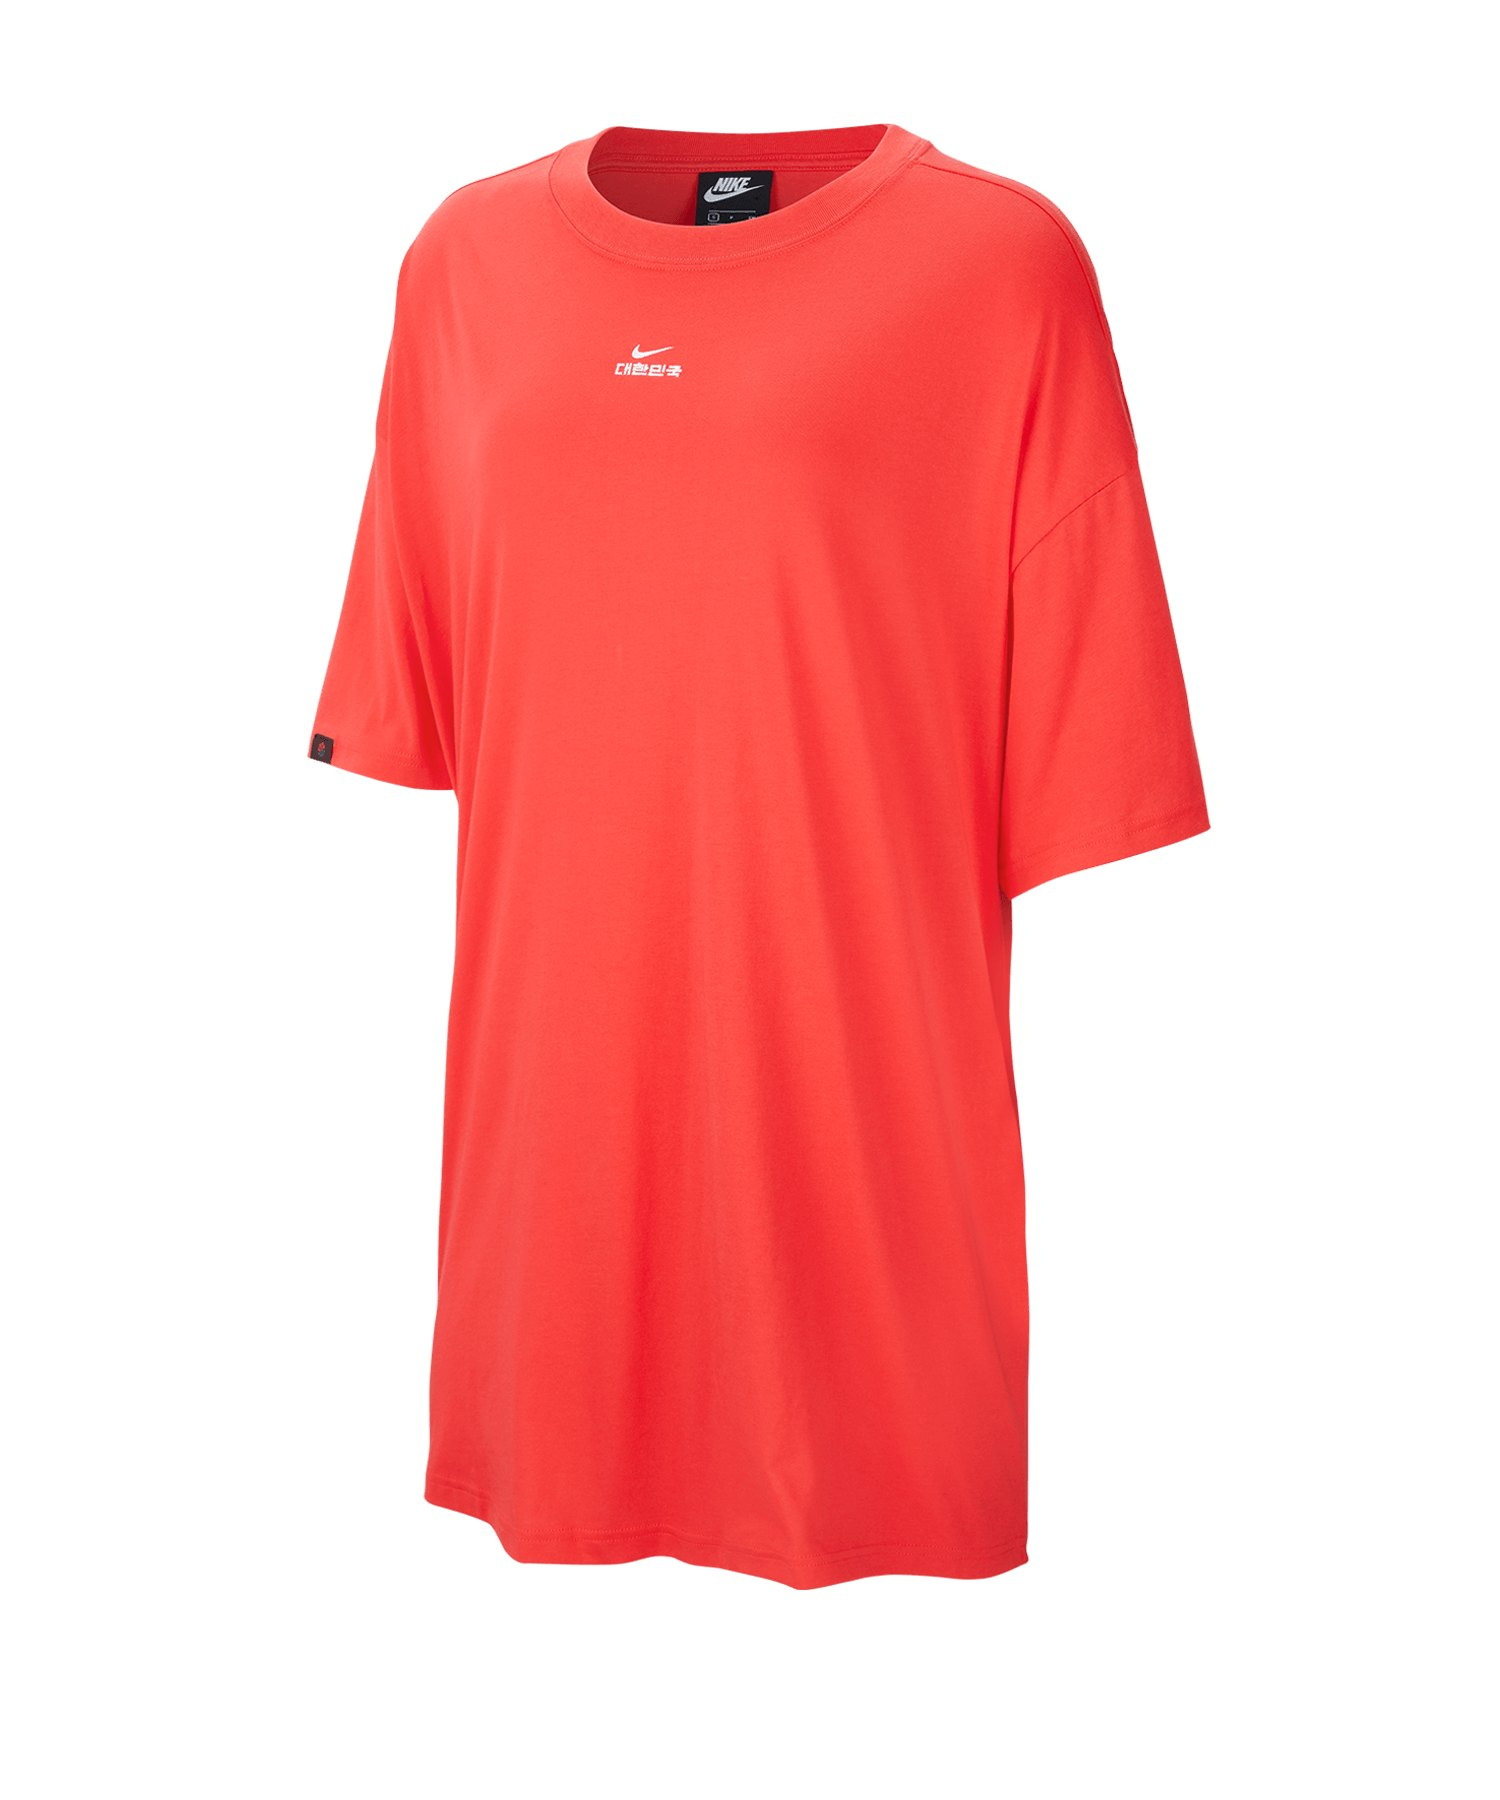 Nike Südkorea Essential Dress Kleid Damen Rot F670 - rot